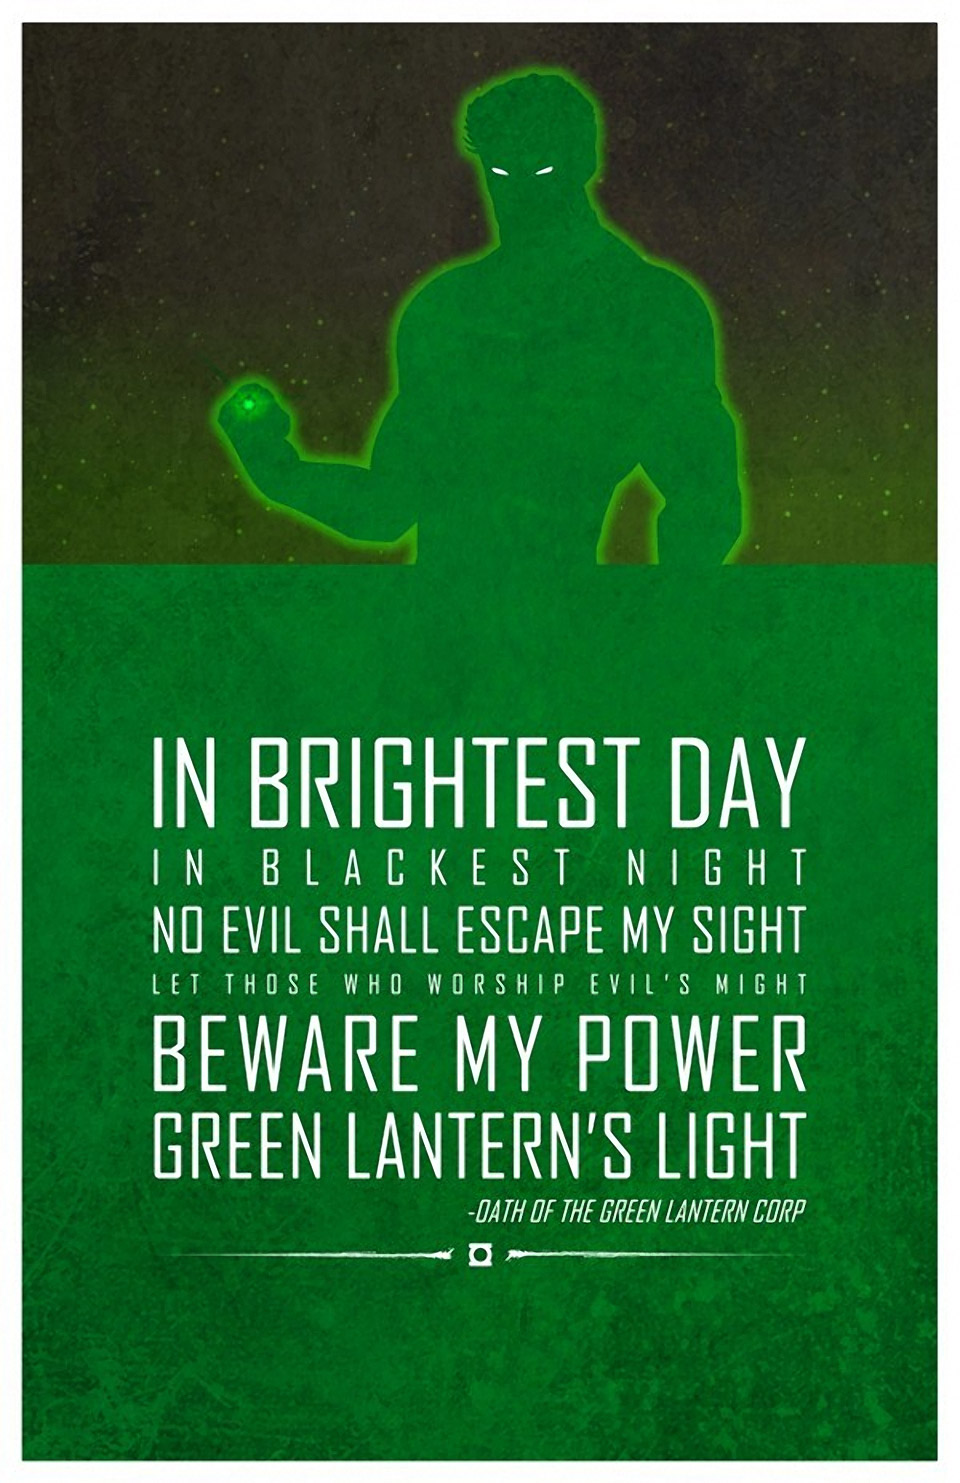 Heroic Words of Wisdom: Inspirational Posters